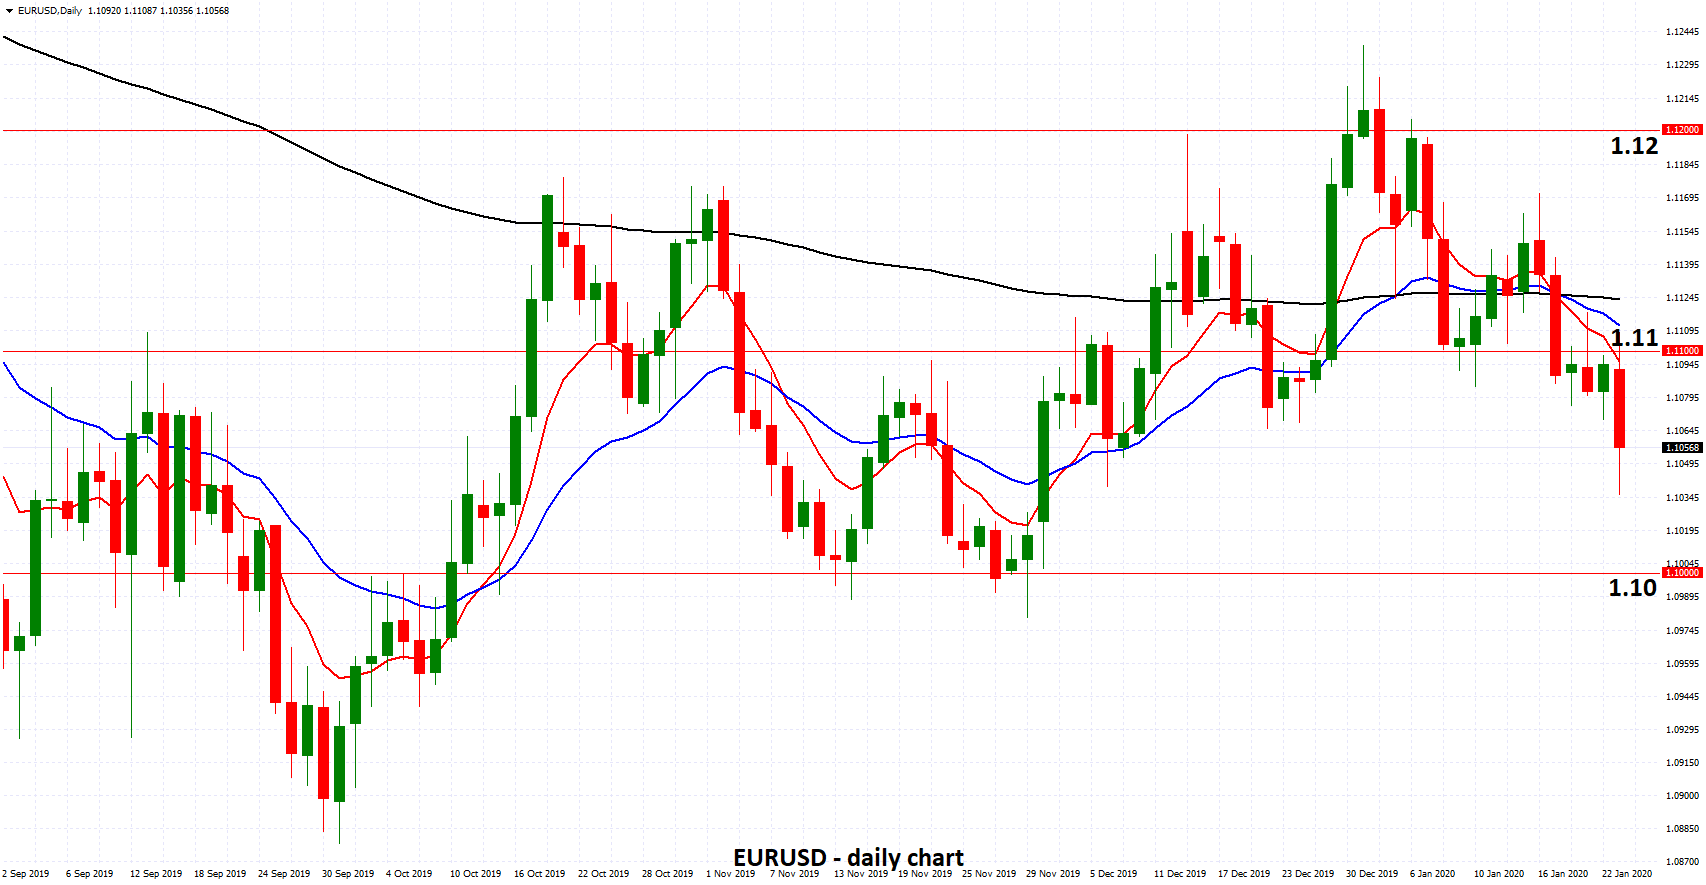 EURUSD - Drops to One Month Low Below 1.1050 as ECB Holds Rates